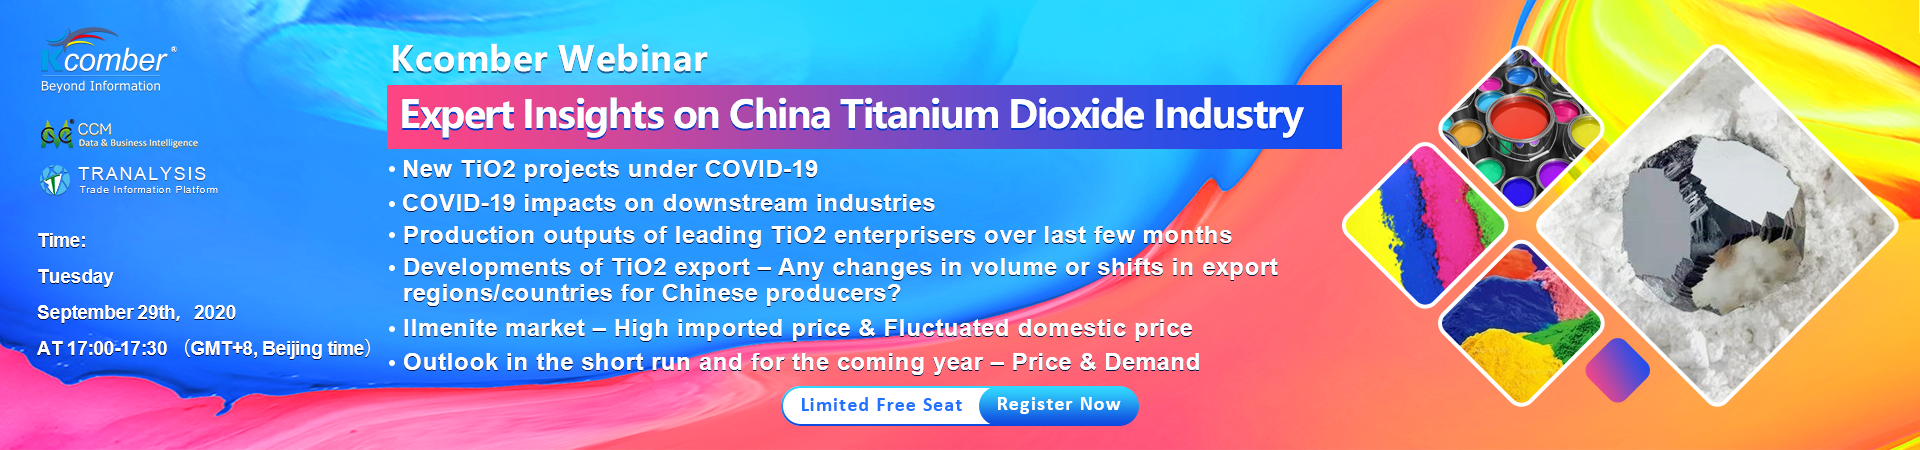 Expert Insights on China Titanium Dioxide Industry